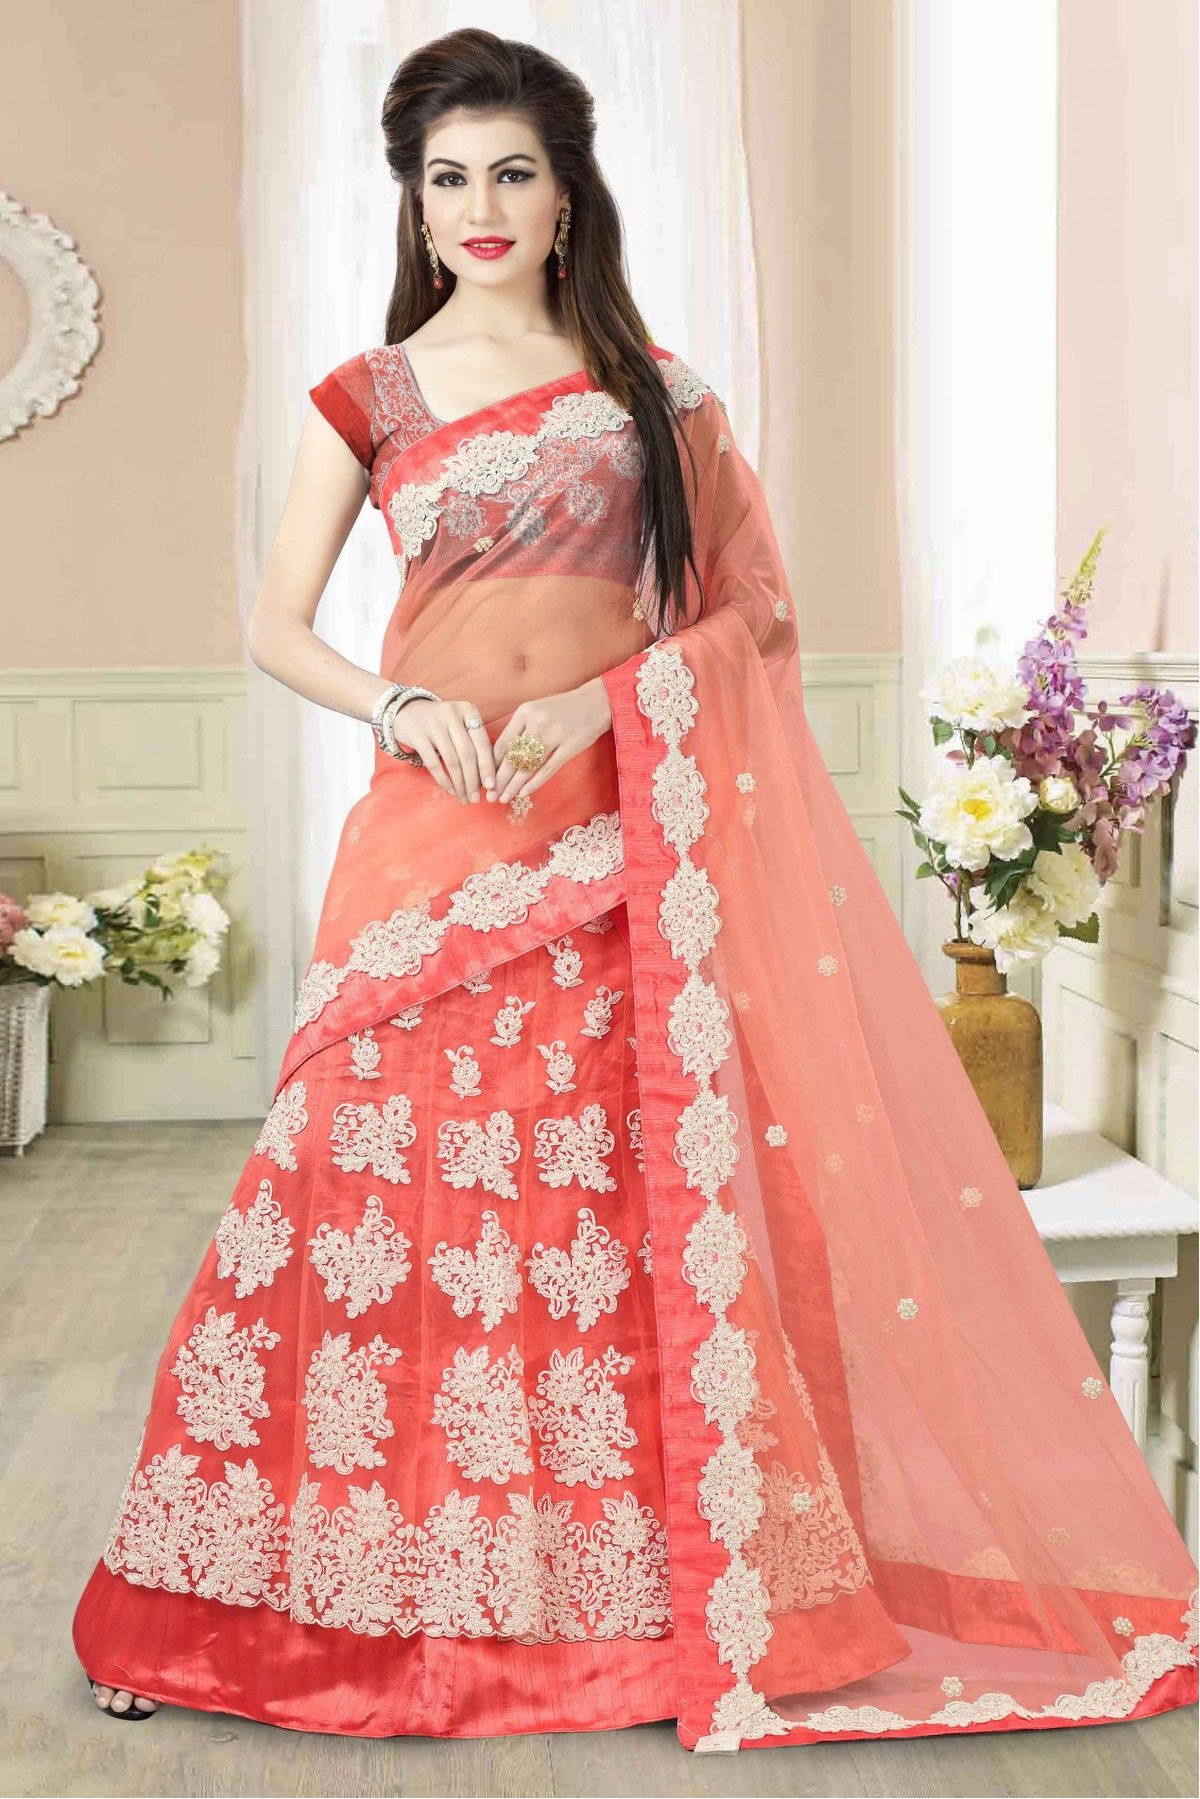 c625c7590b The Stylish And Elegant Lehenga Choli In Peach Colour Looks Stunning And  Gorgeous With Trendy And